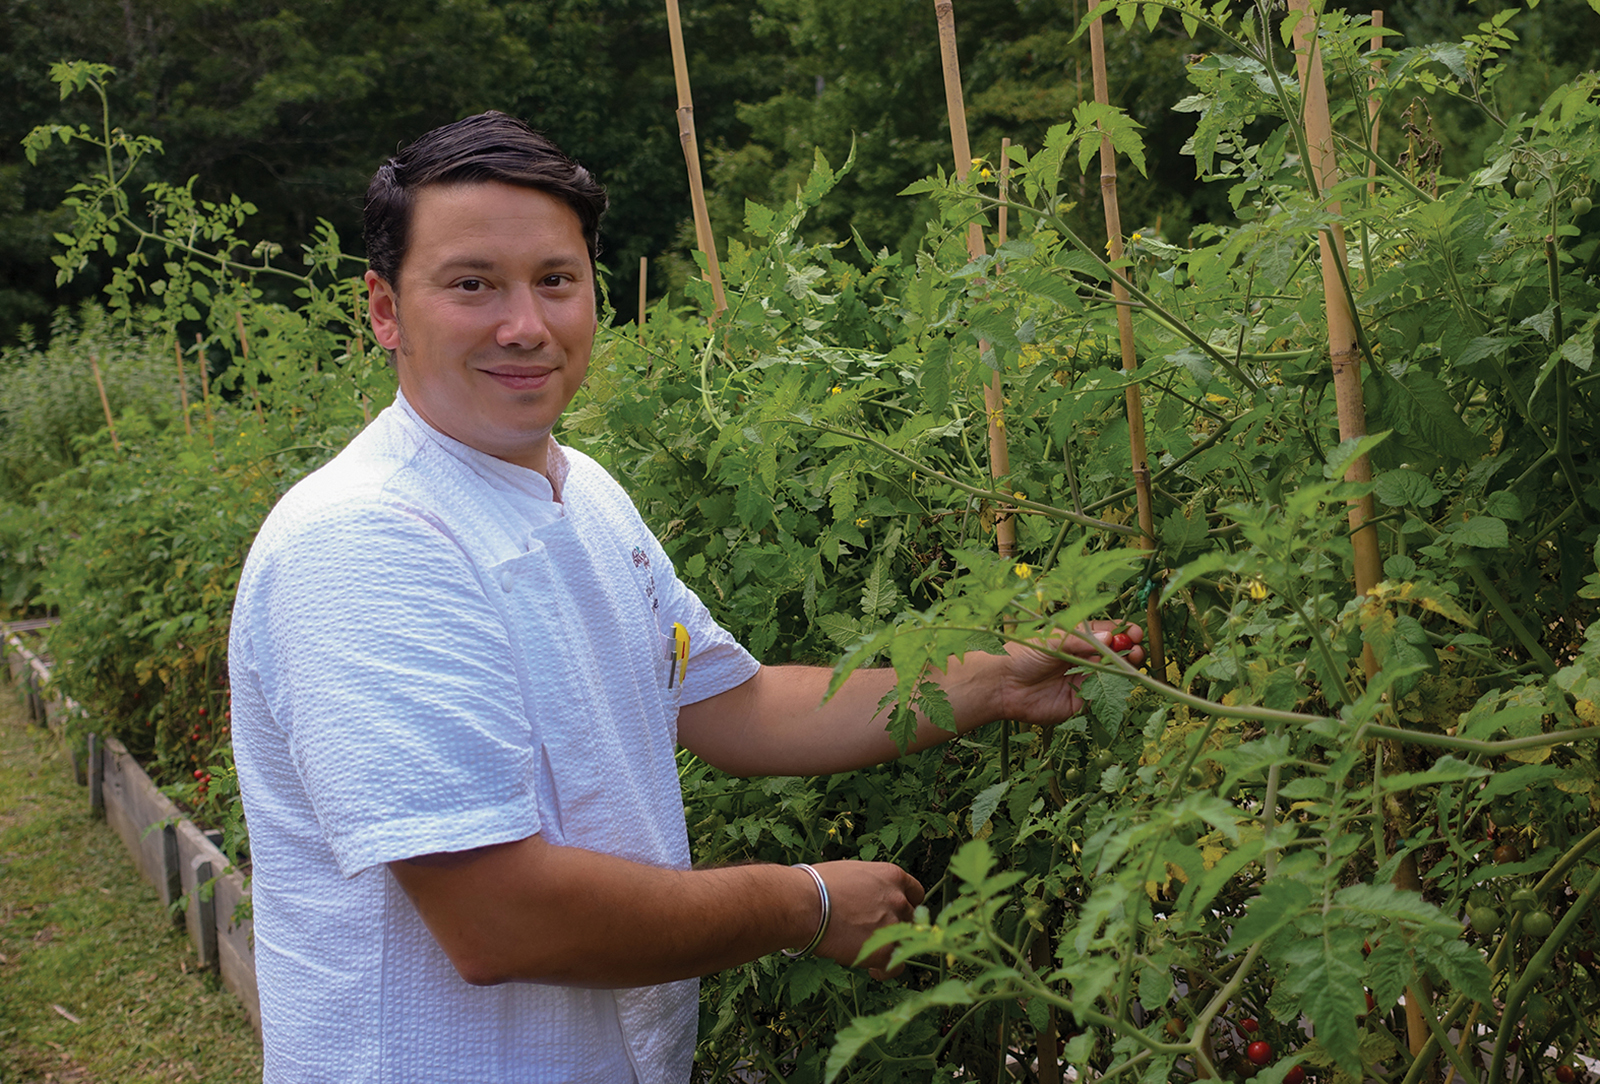 madisons-highlands-nc-chef-chris-huerta-garden